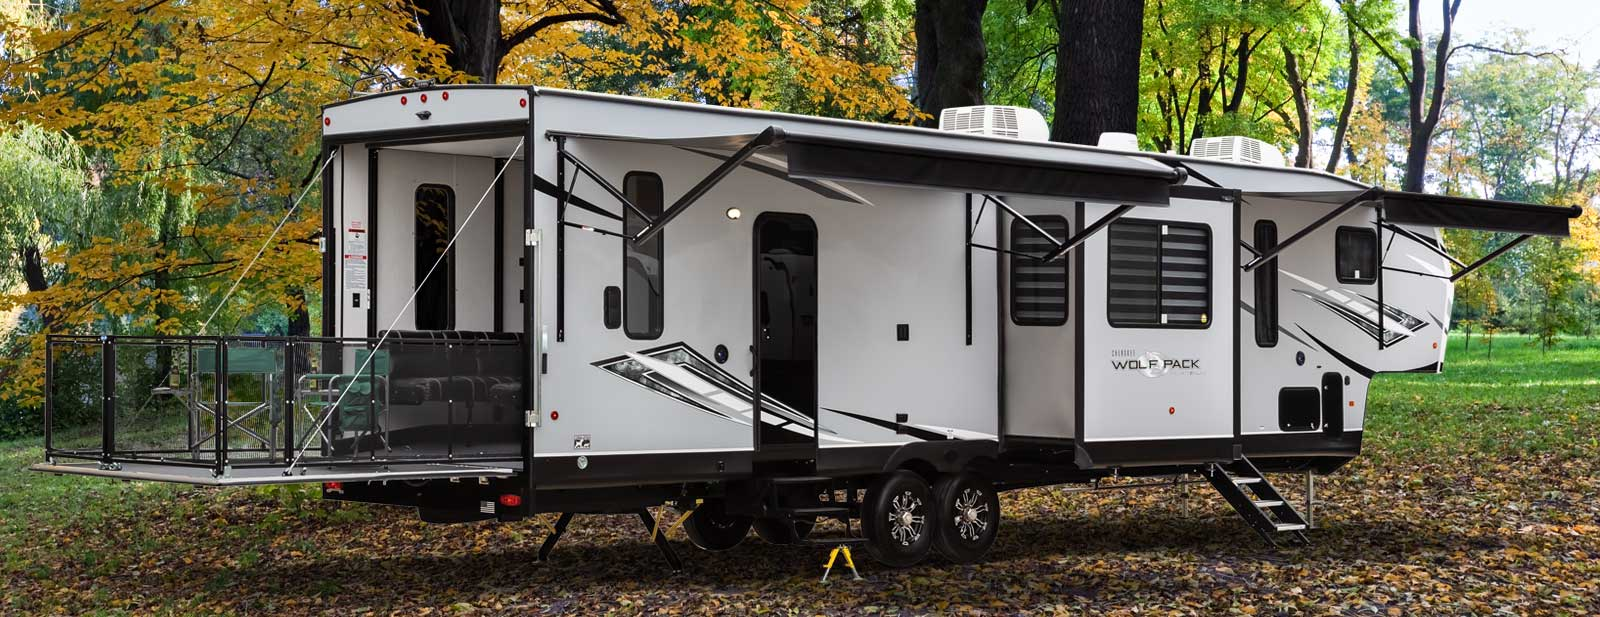 Wolf Pack | Forest River RV - Manufacturer of Travel Trailers